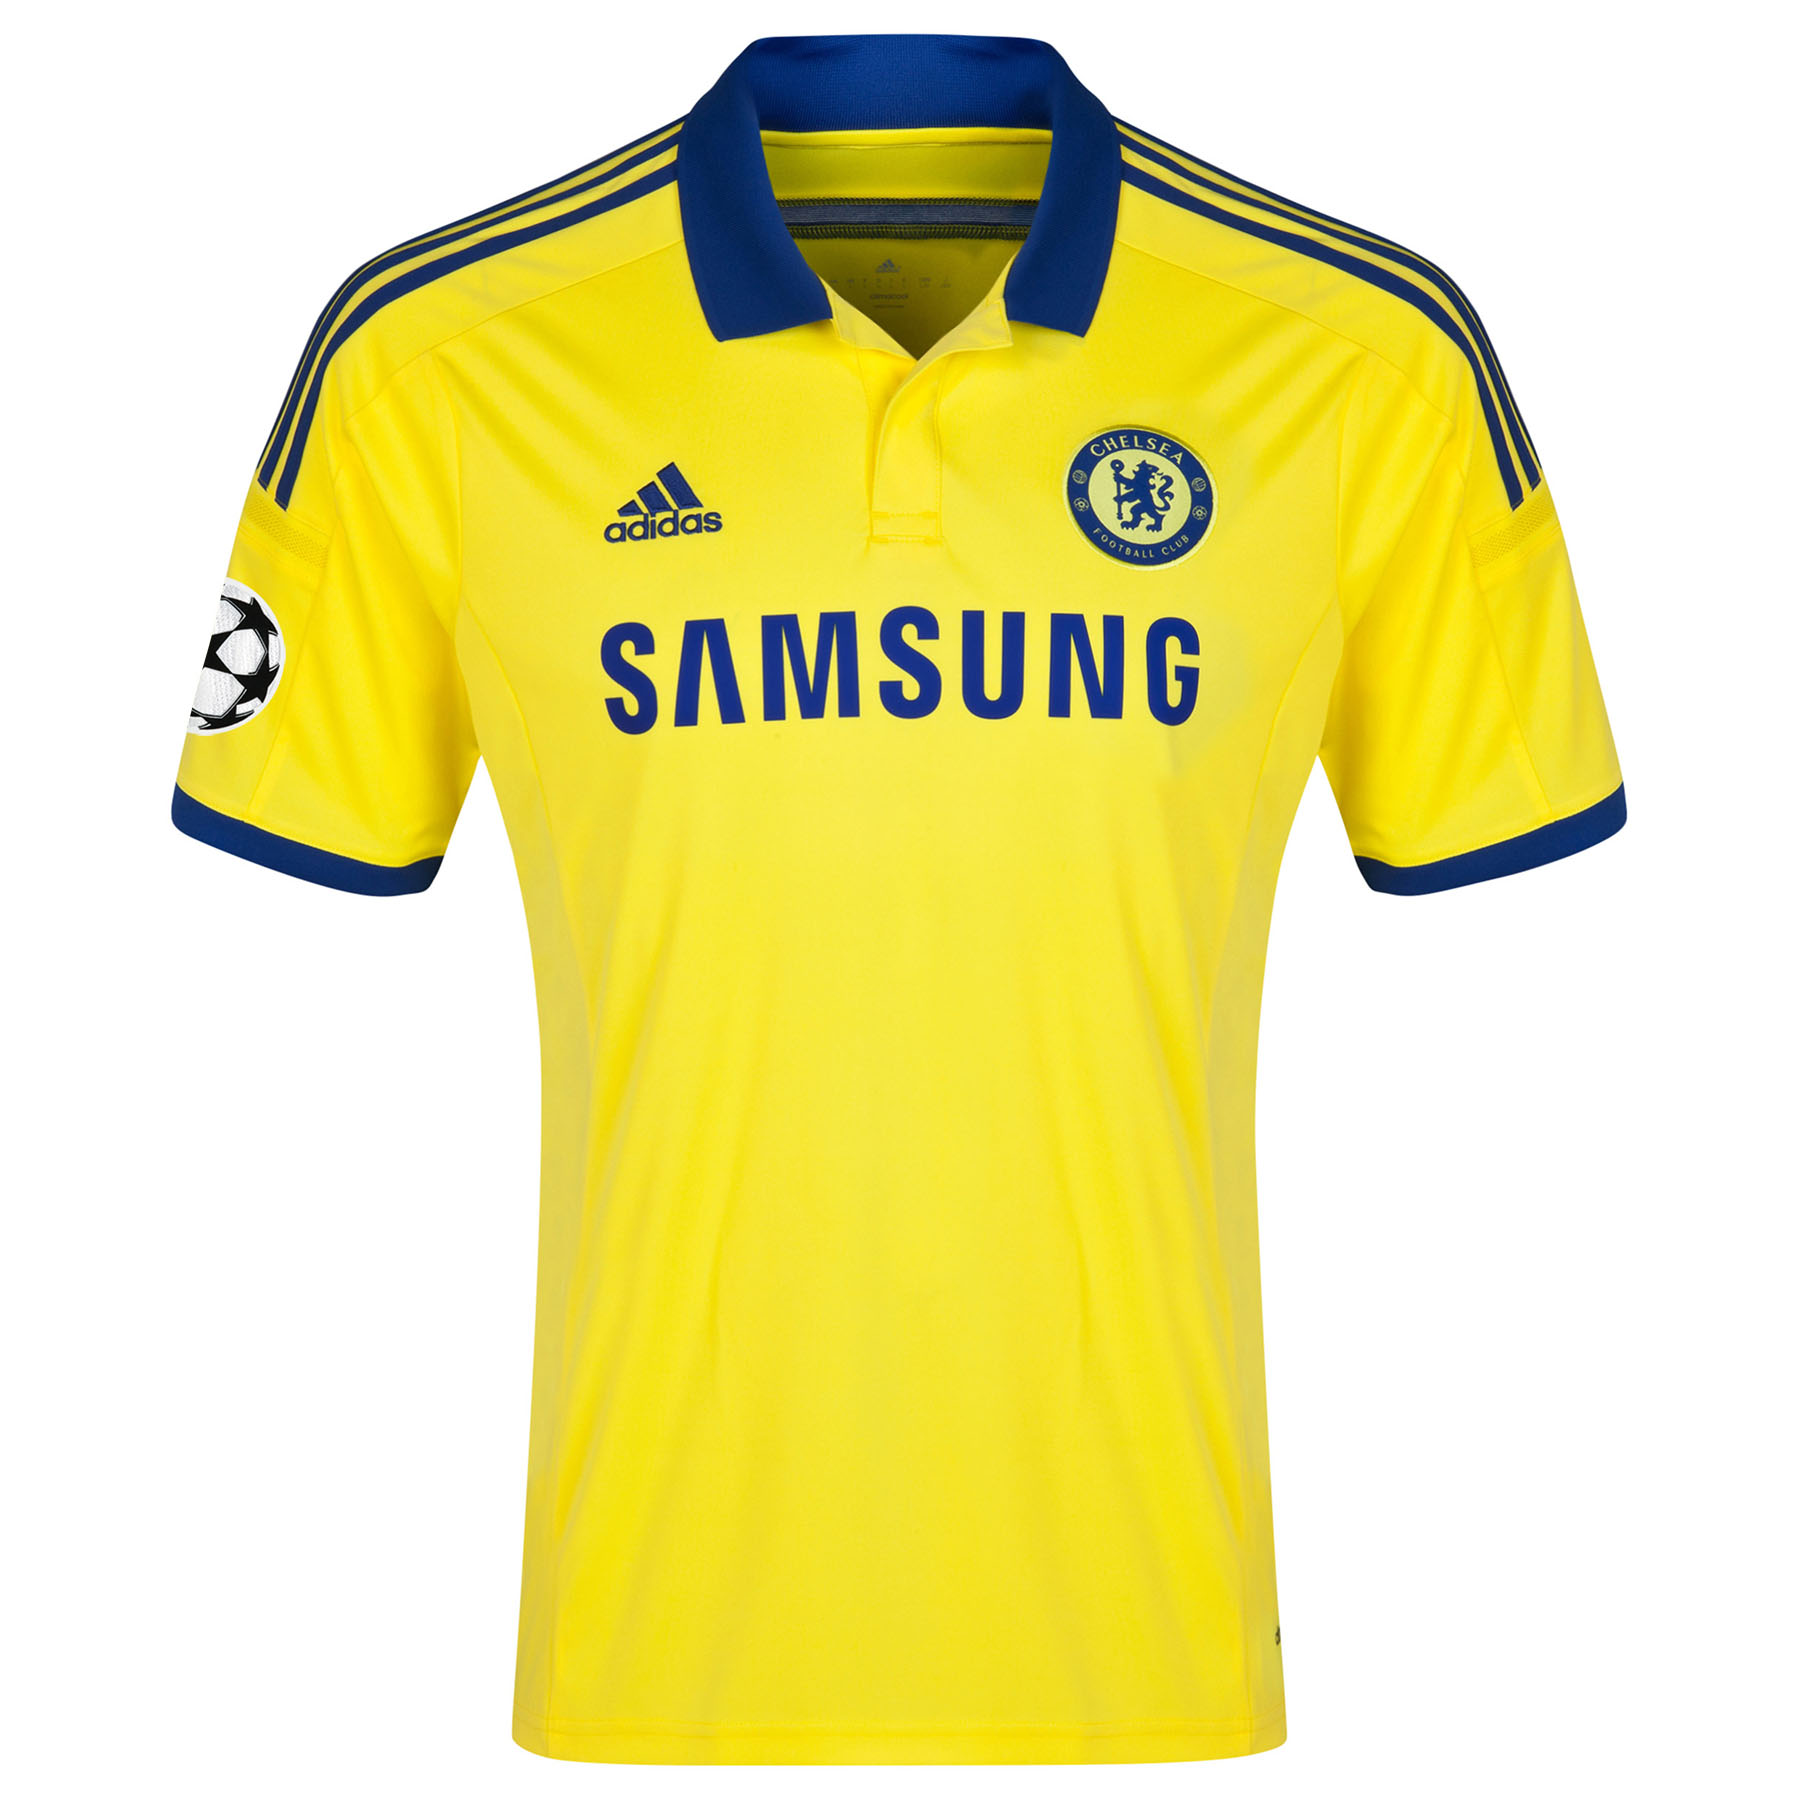 Chelsea UEFA Champions League Away Shirt 2014/15